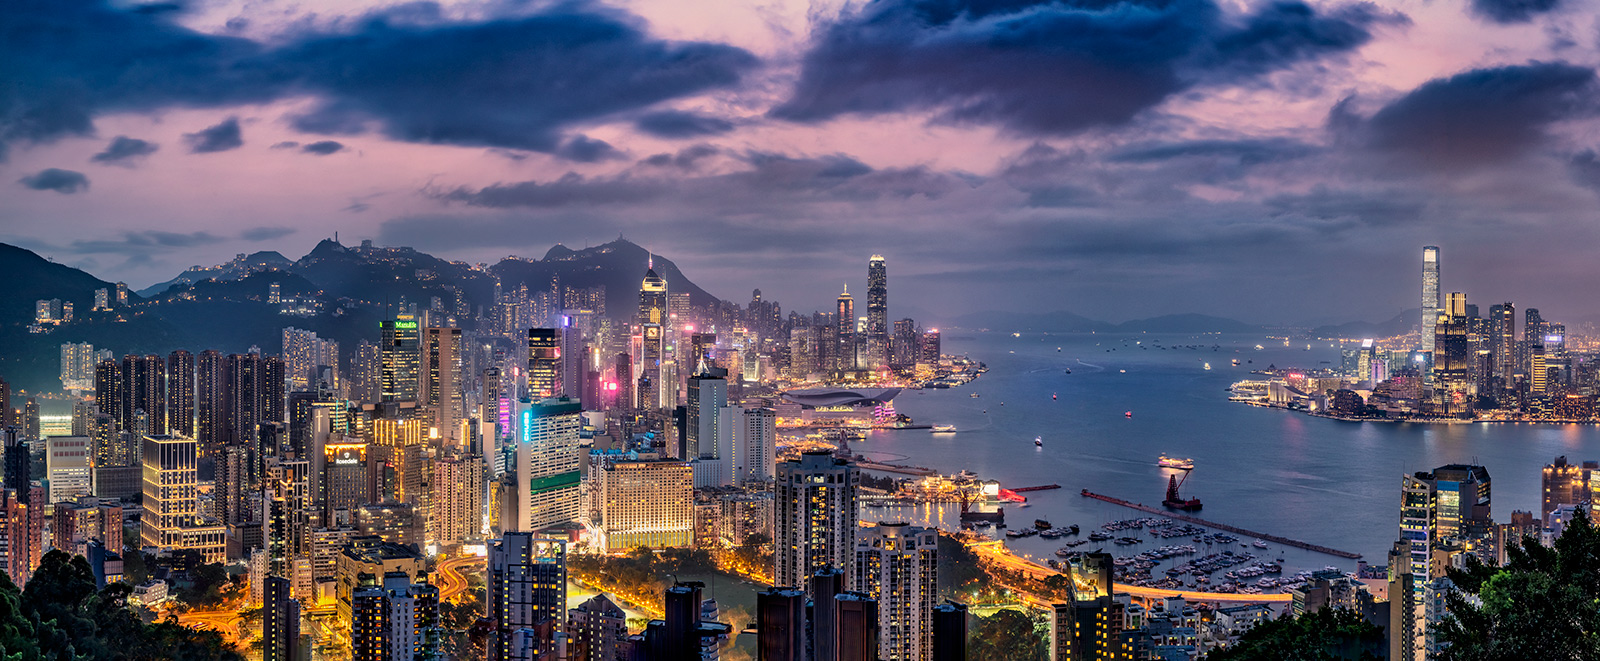 My favorite view after dark in Hong Kong